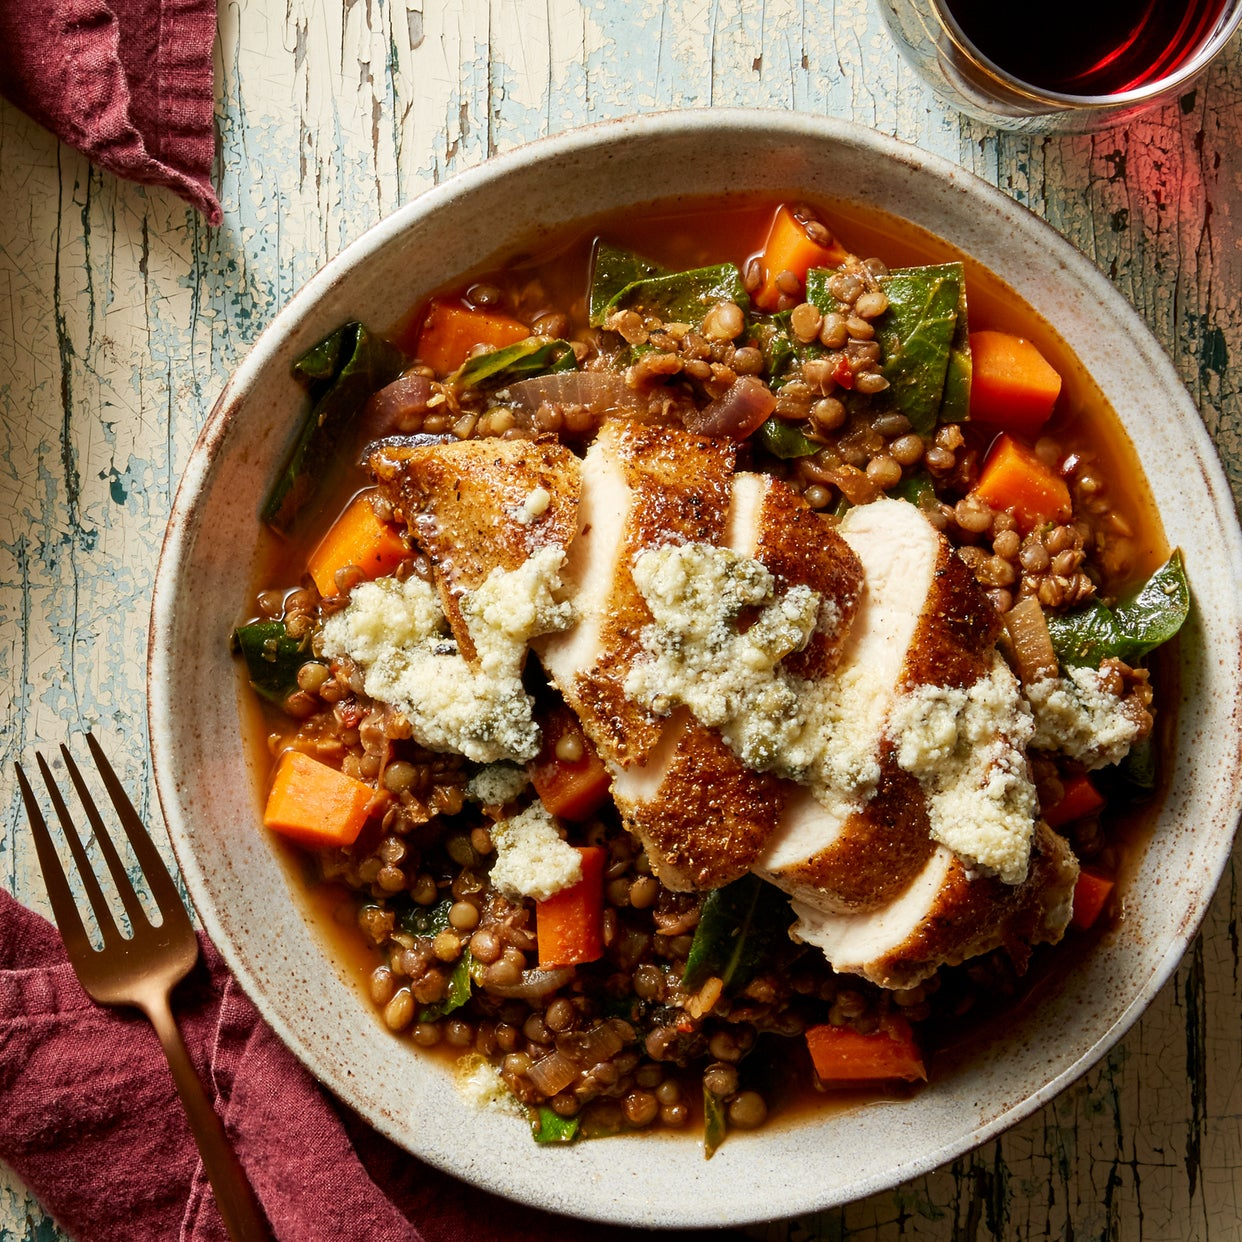 Tuscan Chicken & Green Lentil Stew with Parmesan Cheese & Capers